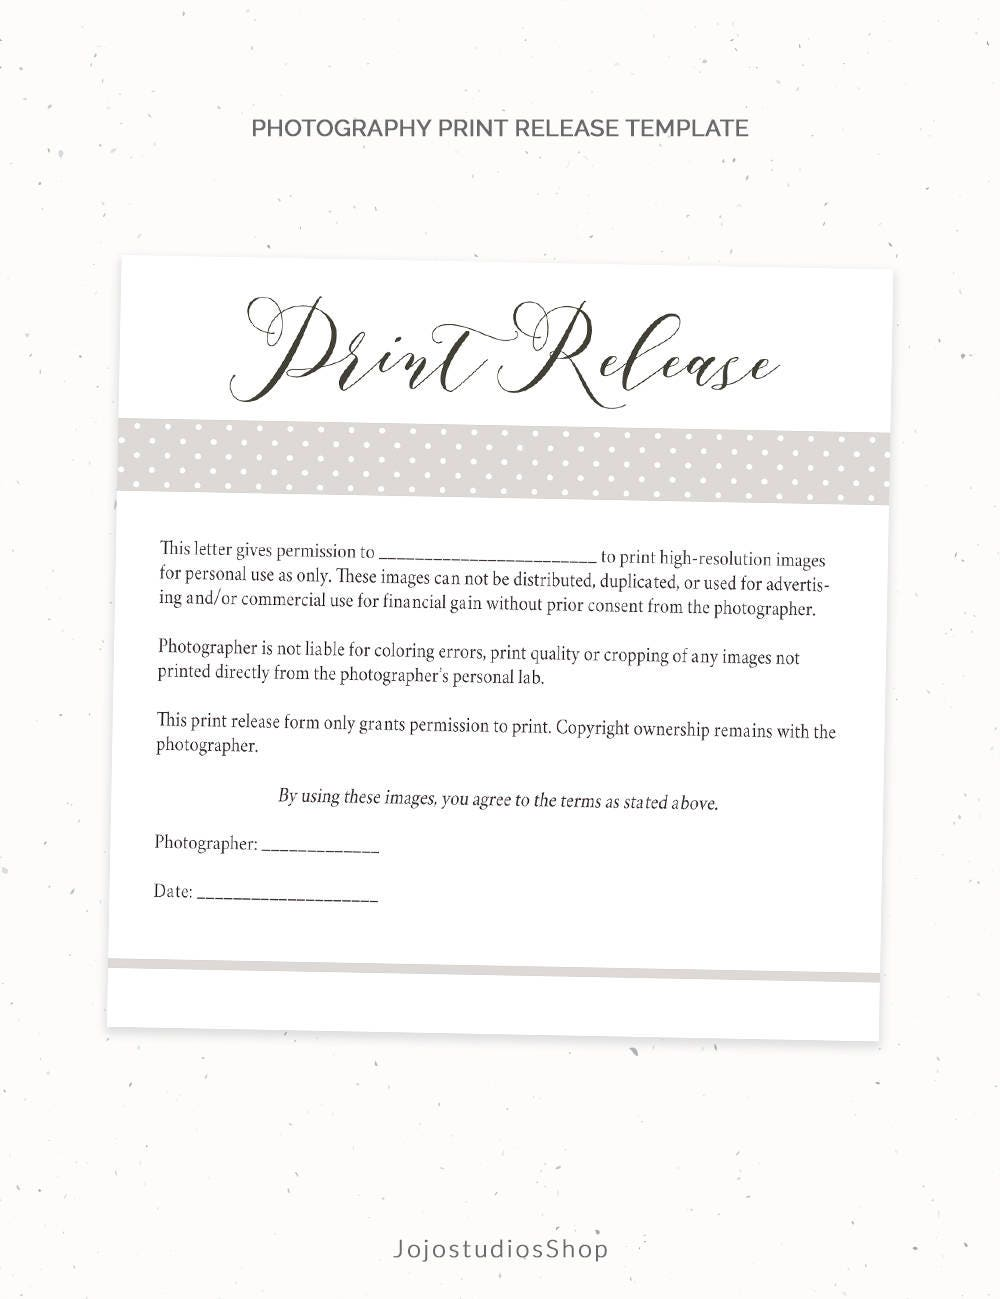 free photography print release form template photography print release form template photography template